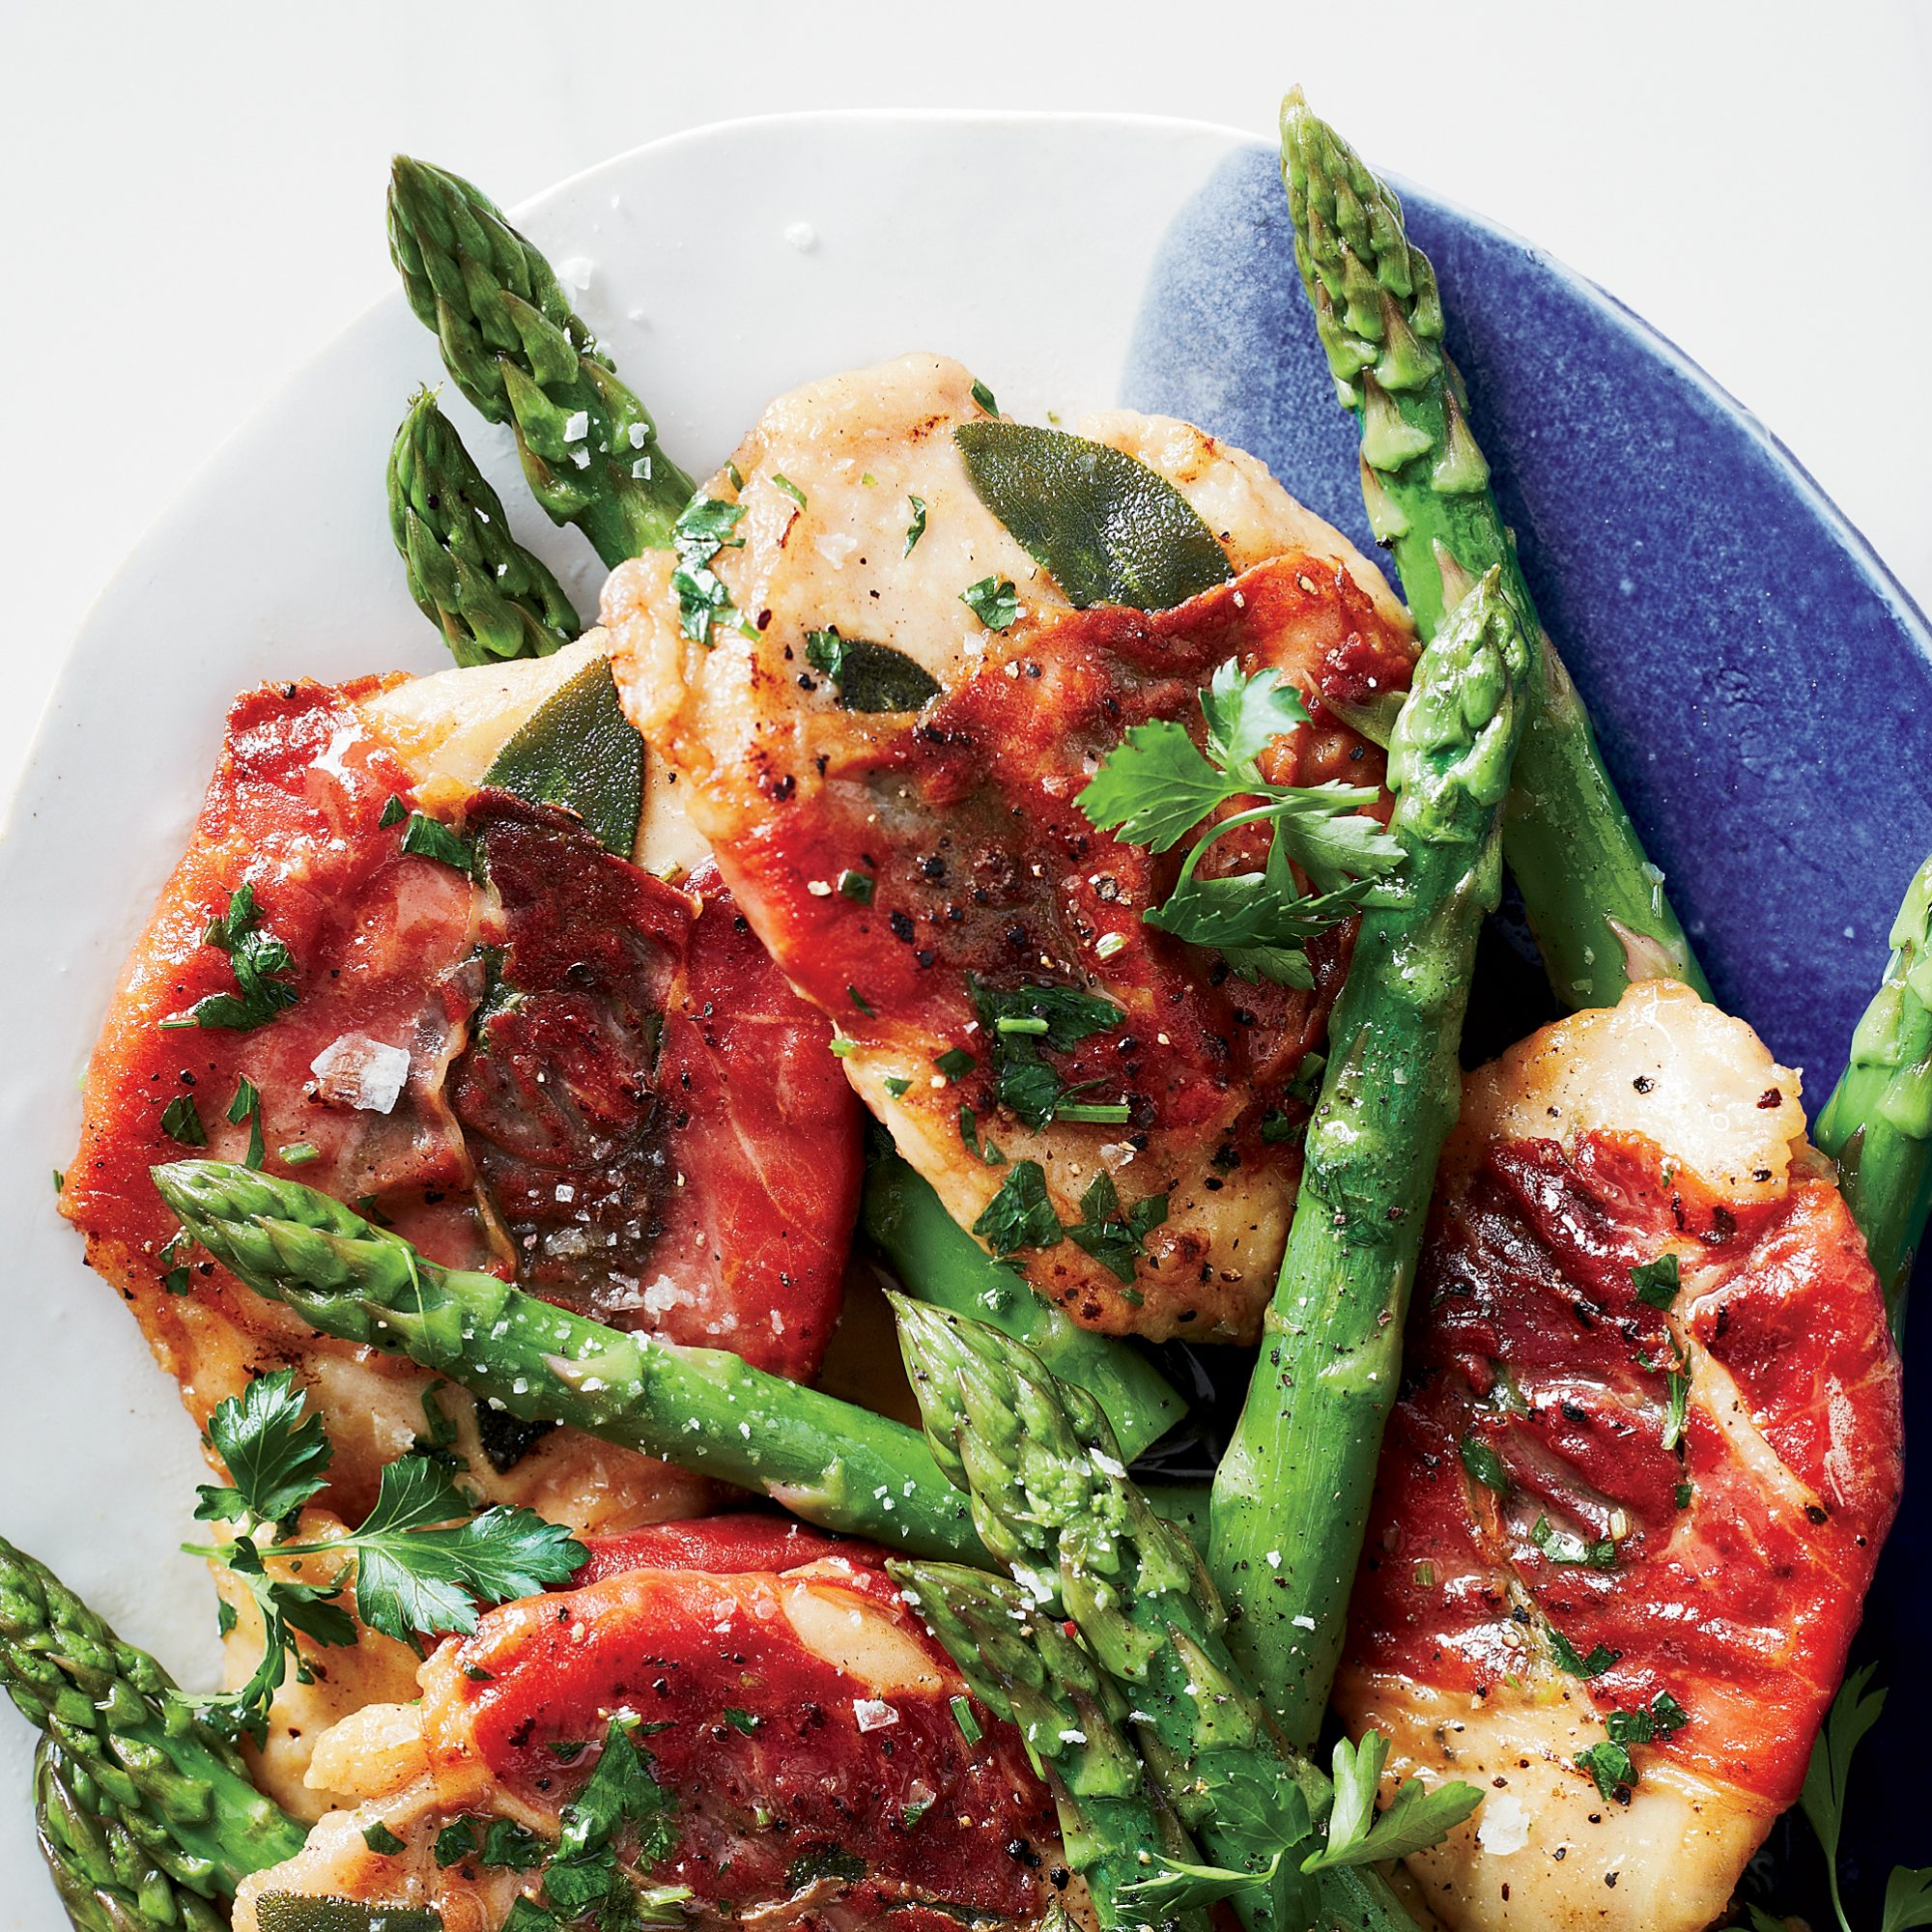 201404-r-chicken-saltimbocca-with-asparagus.jpg